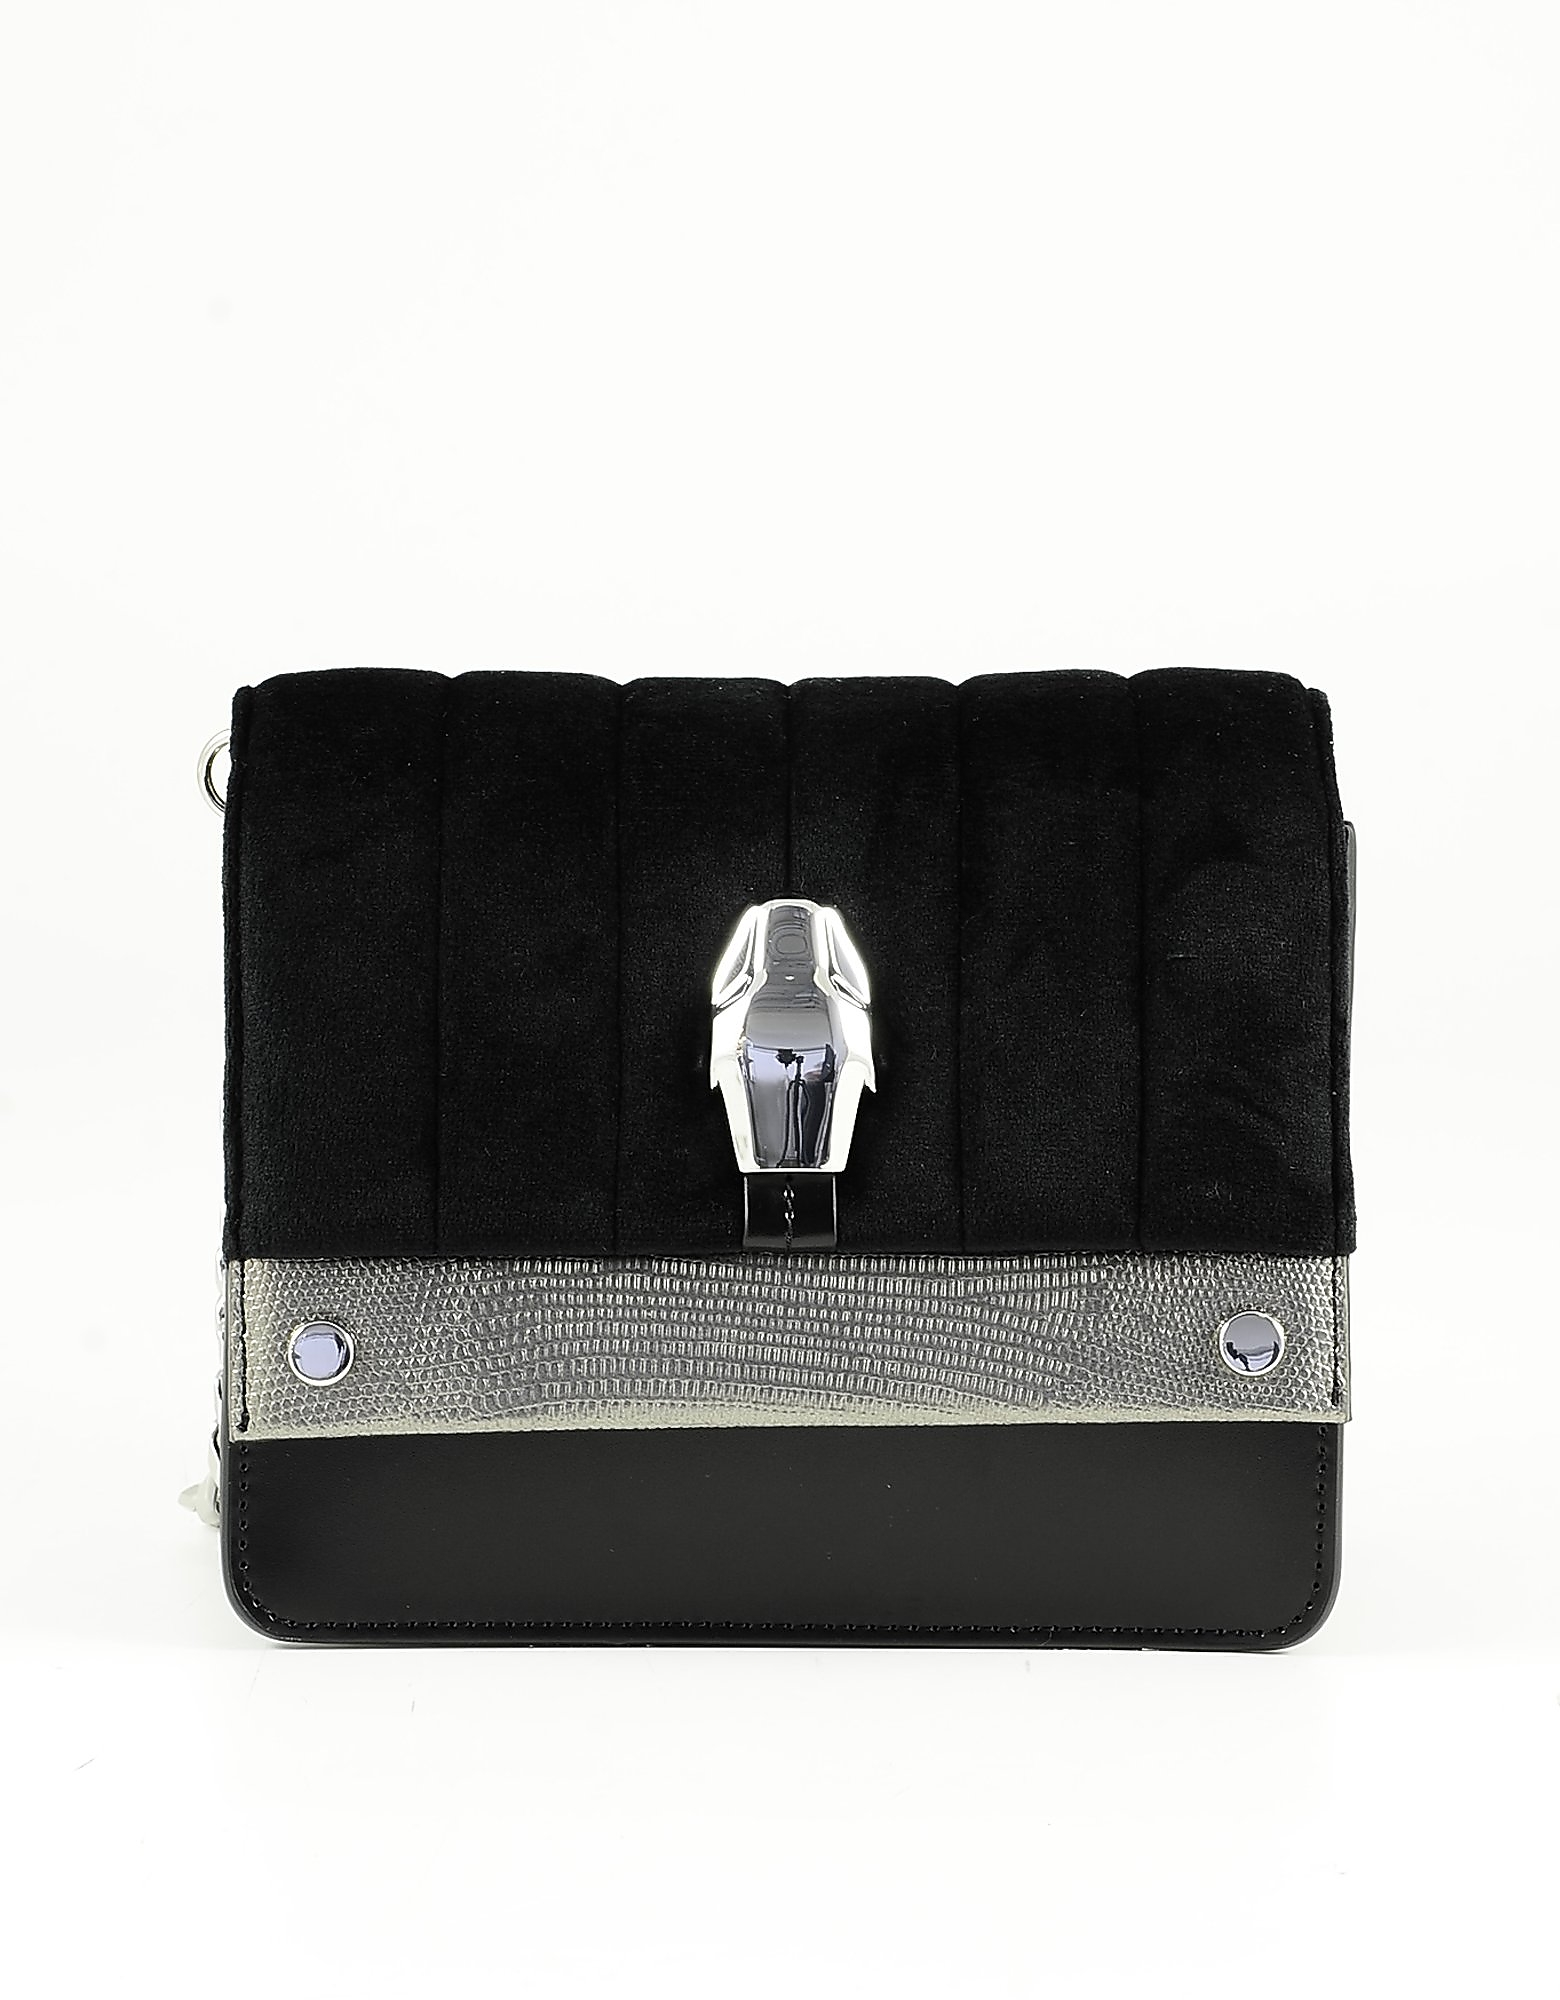 Class Roberto Cavalli Black Leather And Fabric Shoulder Bag